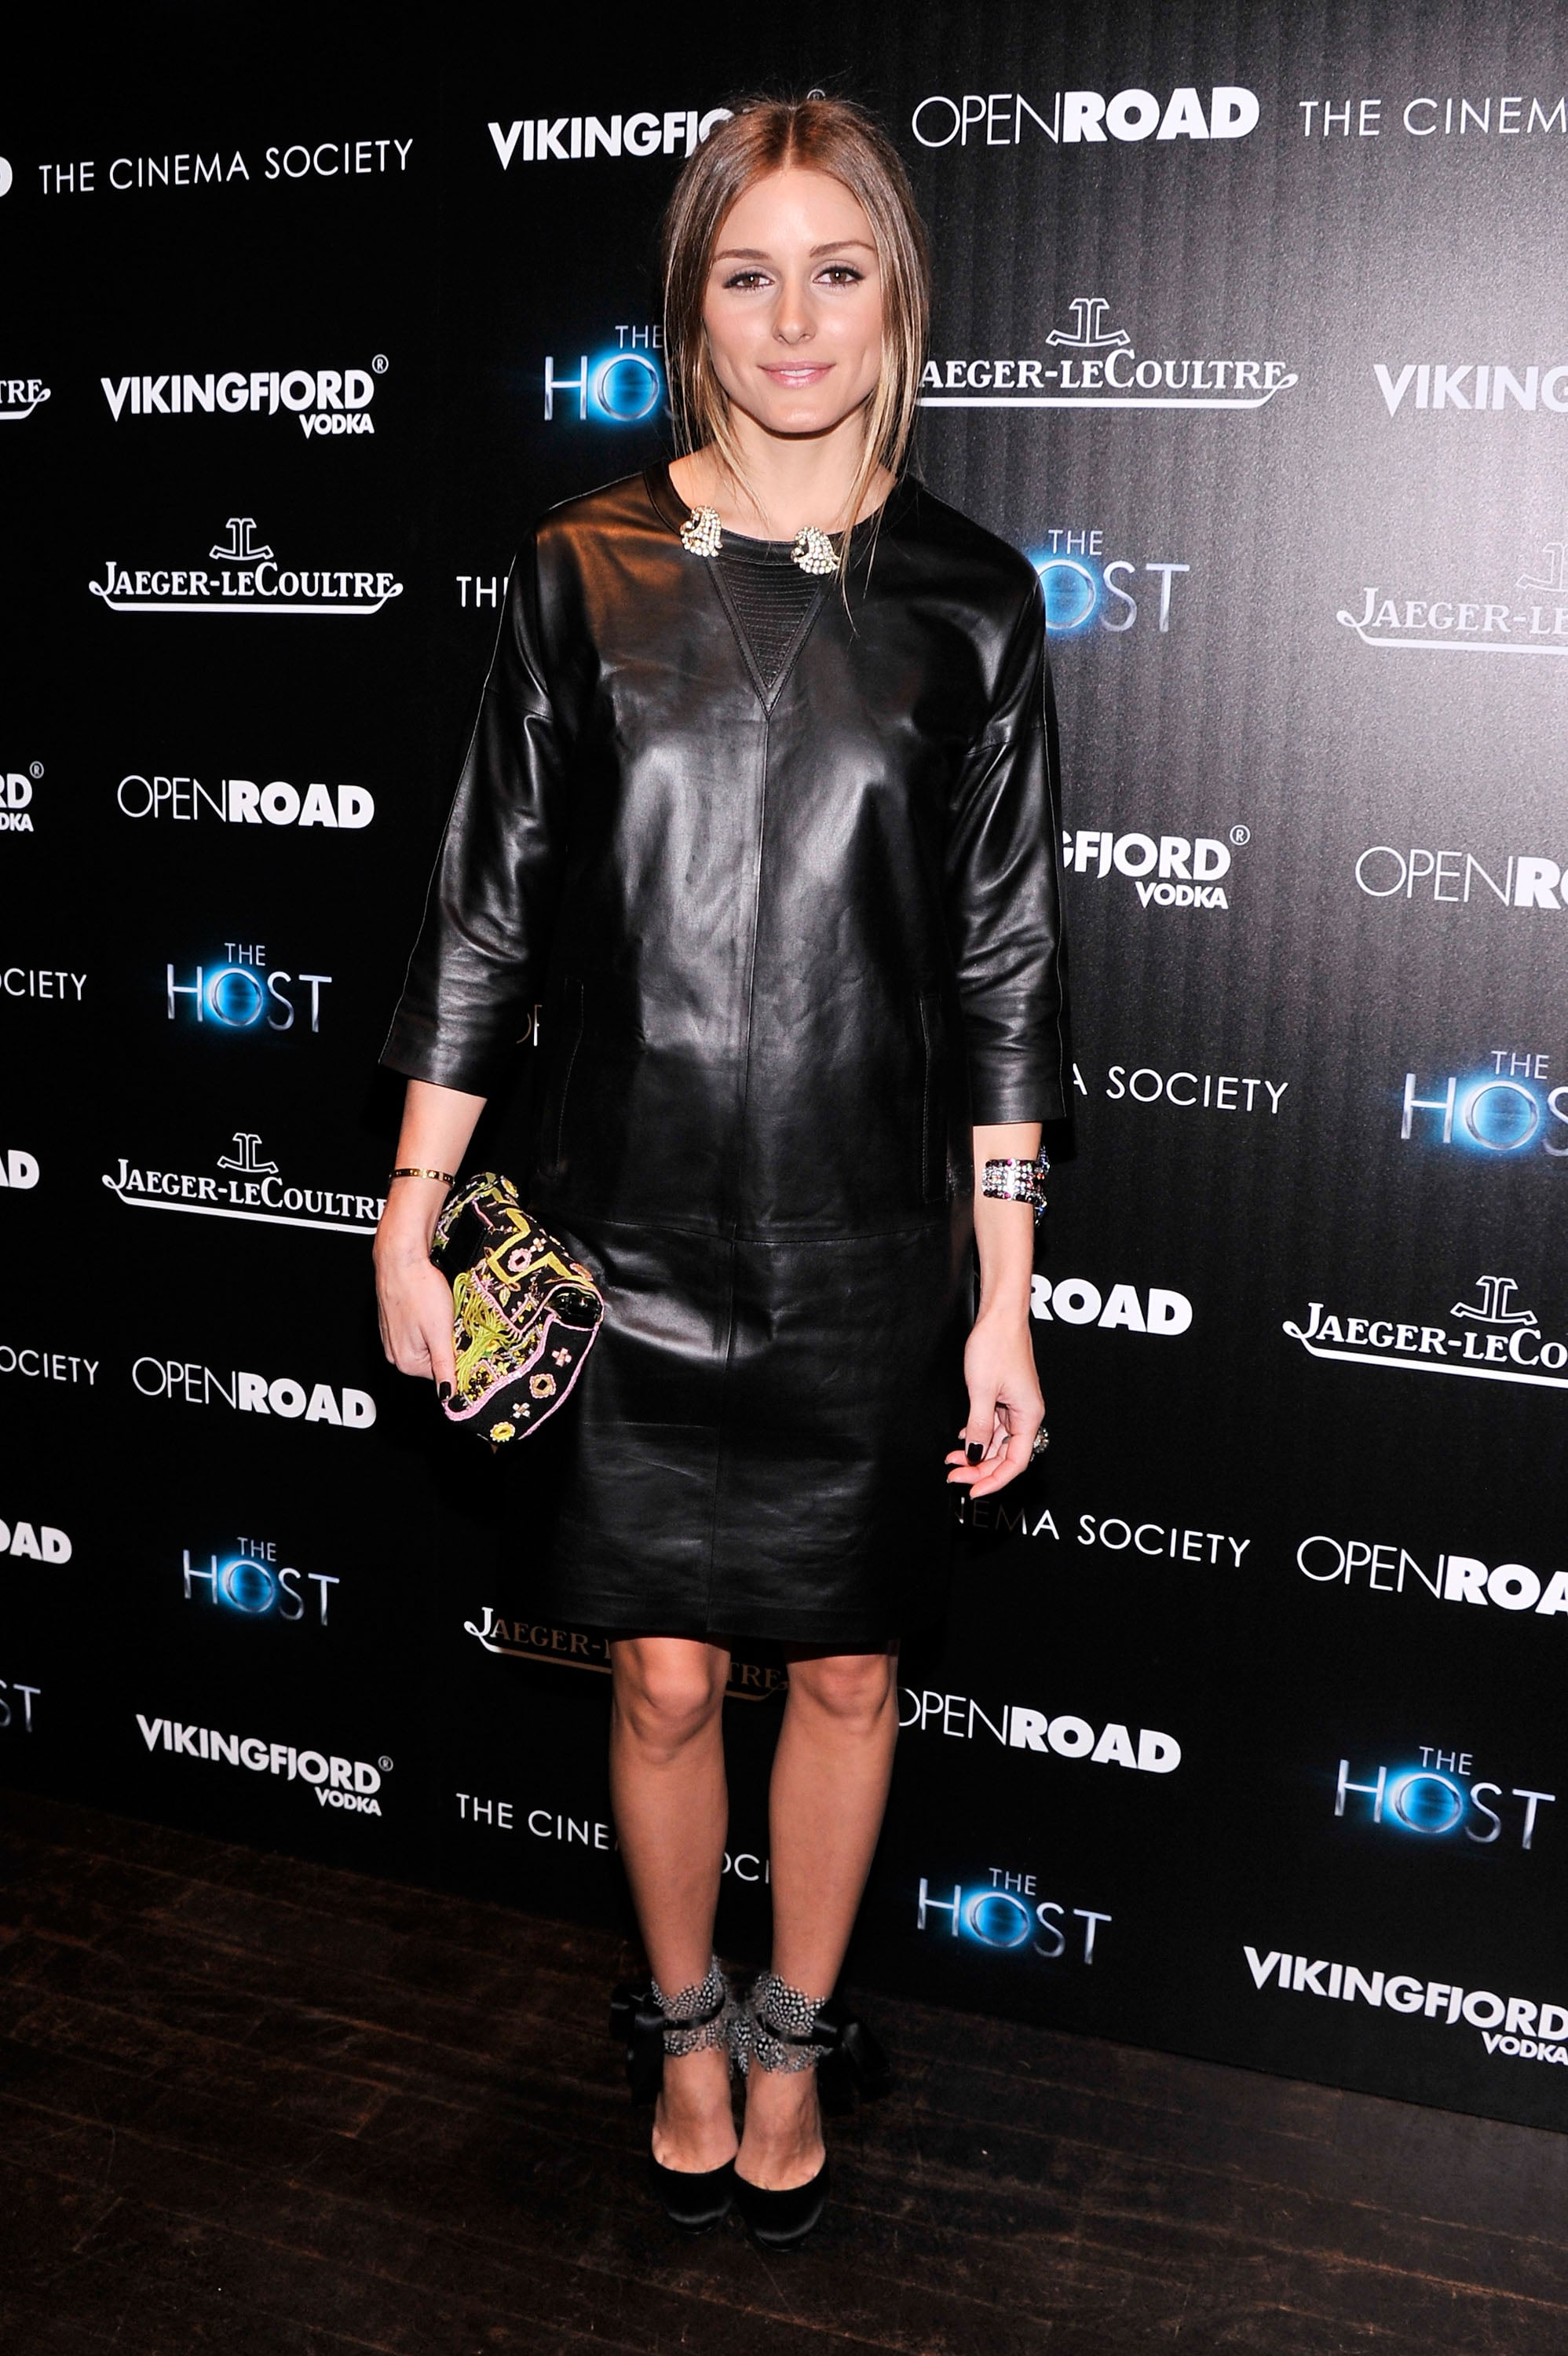 Olivia gave a minimalist leather sheath dress her signature accessory treatment with an embroidered clutch and a pair of feather-adorned heels.